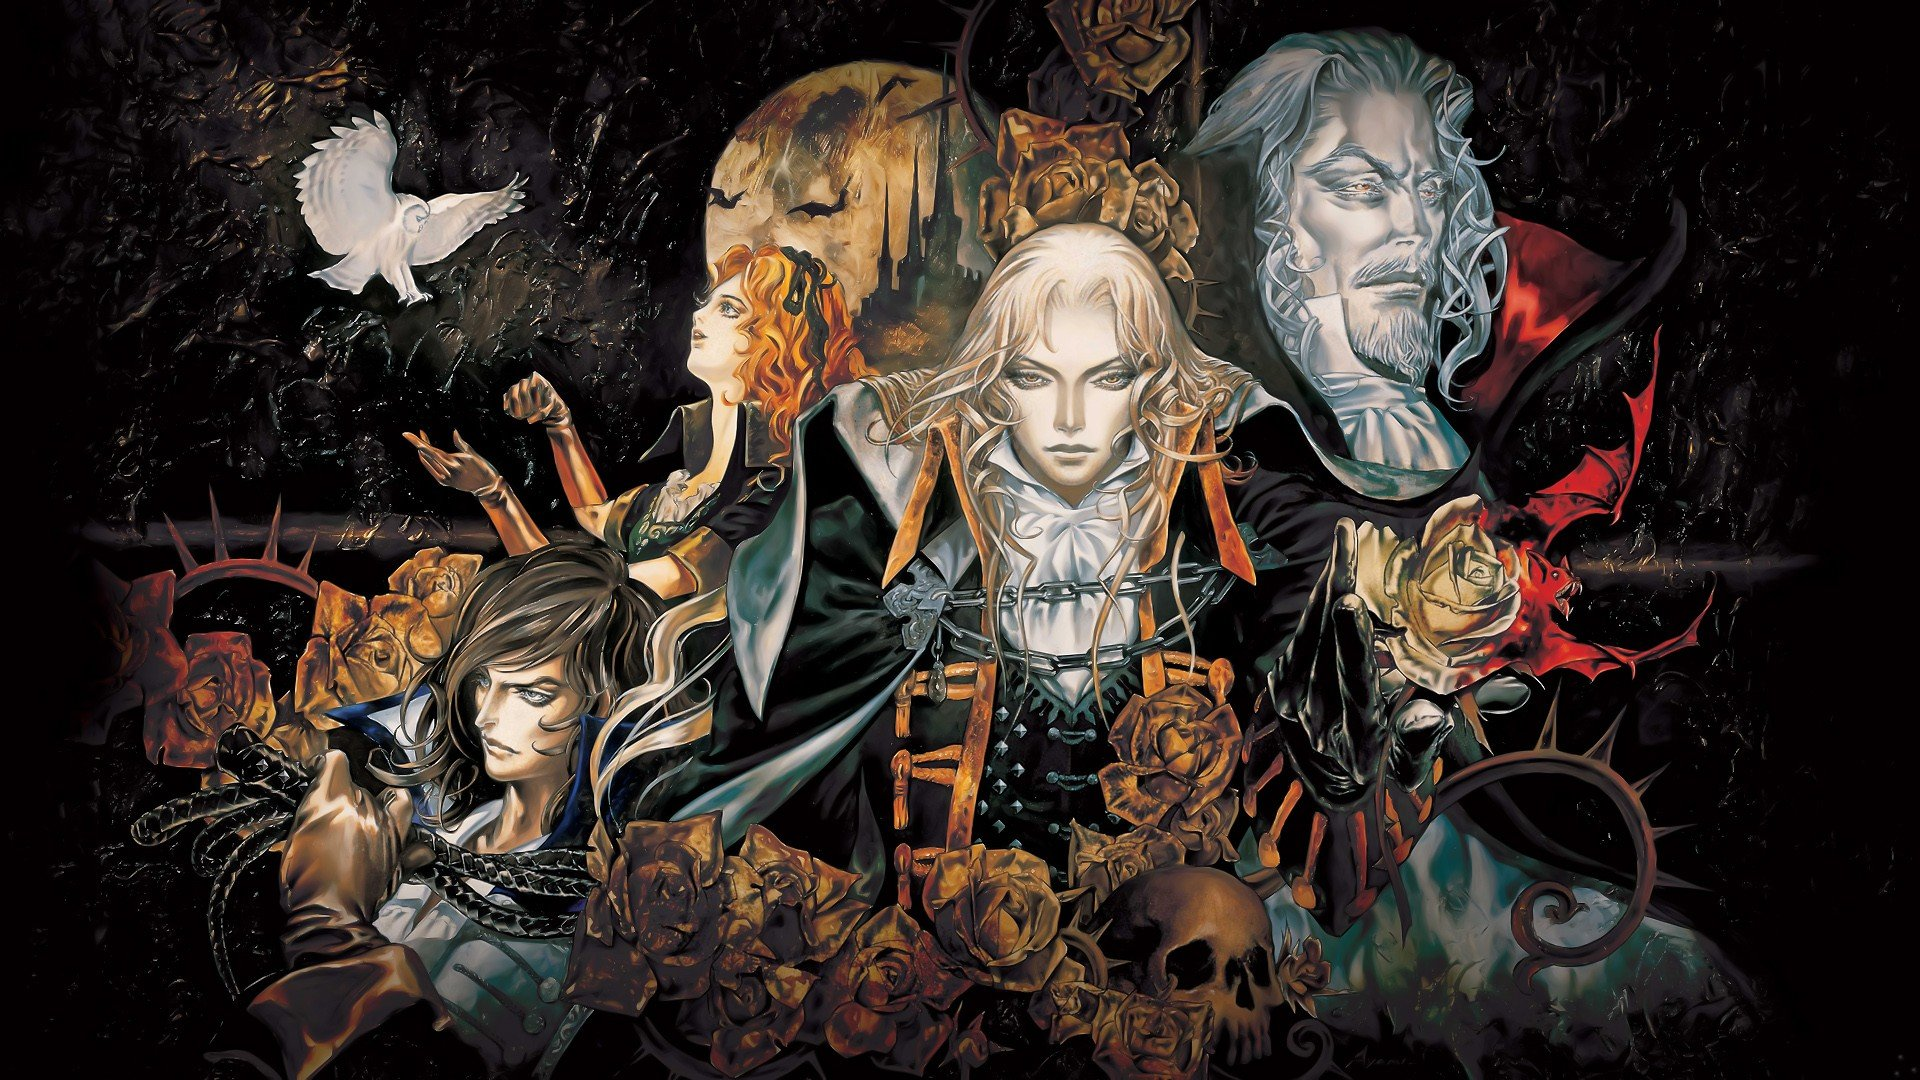 Castlevania Wallpapers Hd For Desktop Backgrounds